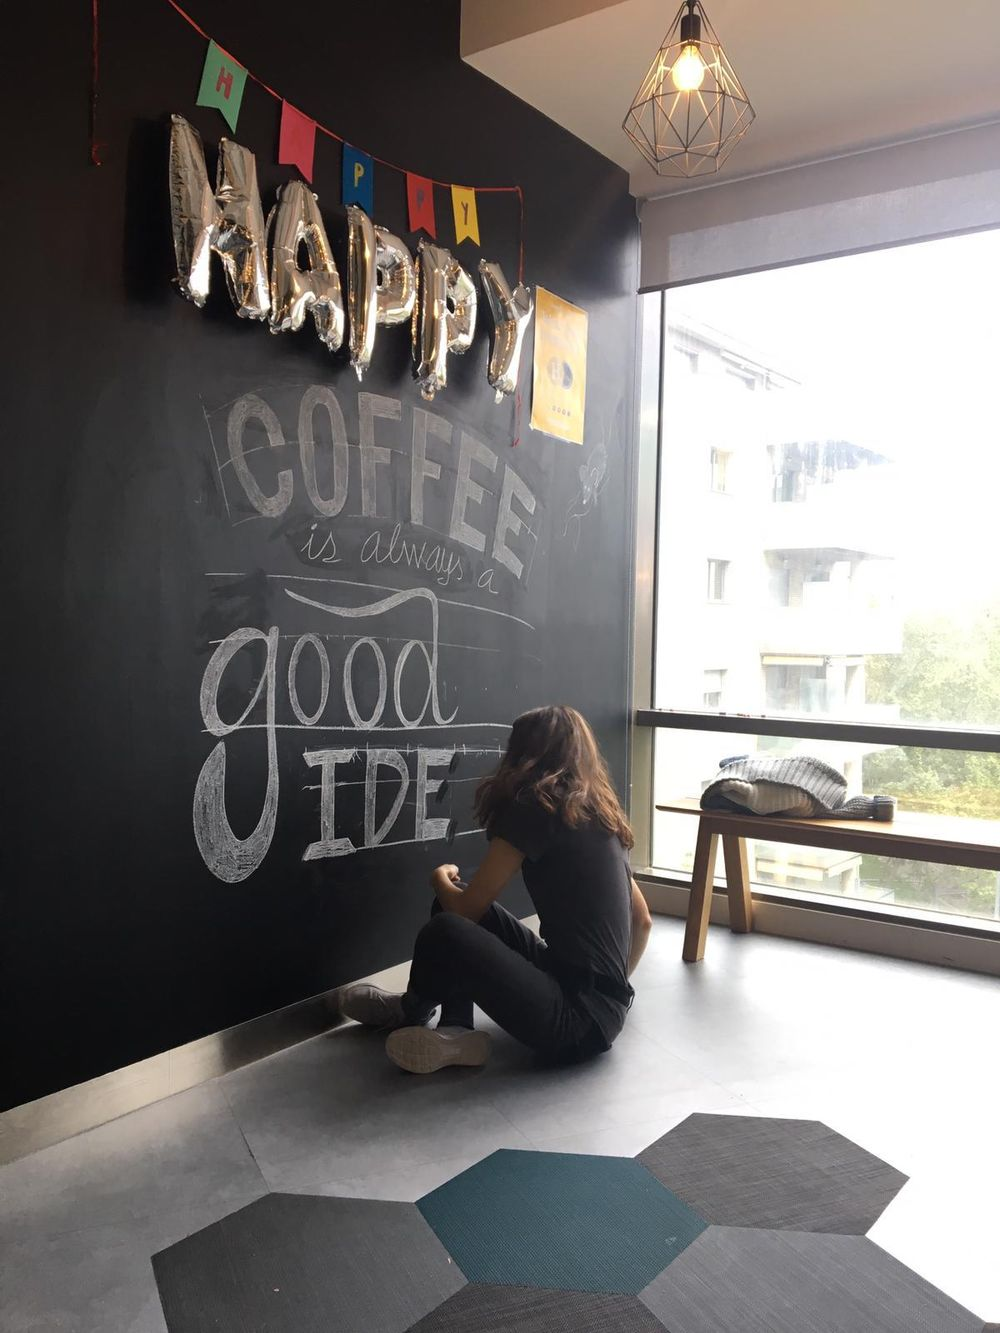 A Coffee is Always a Good Idea - image 2 - student project